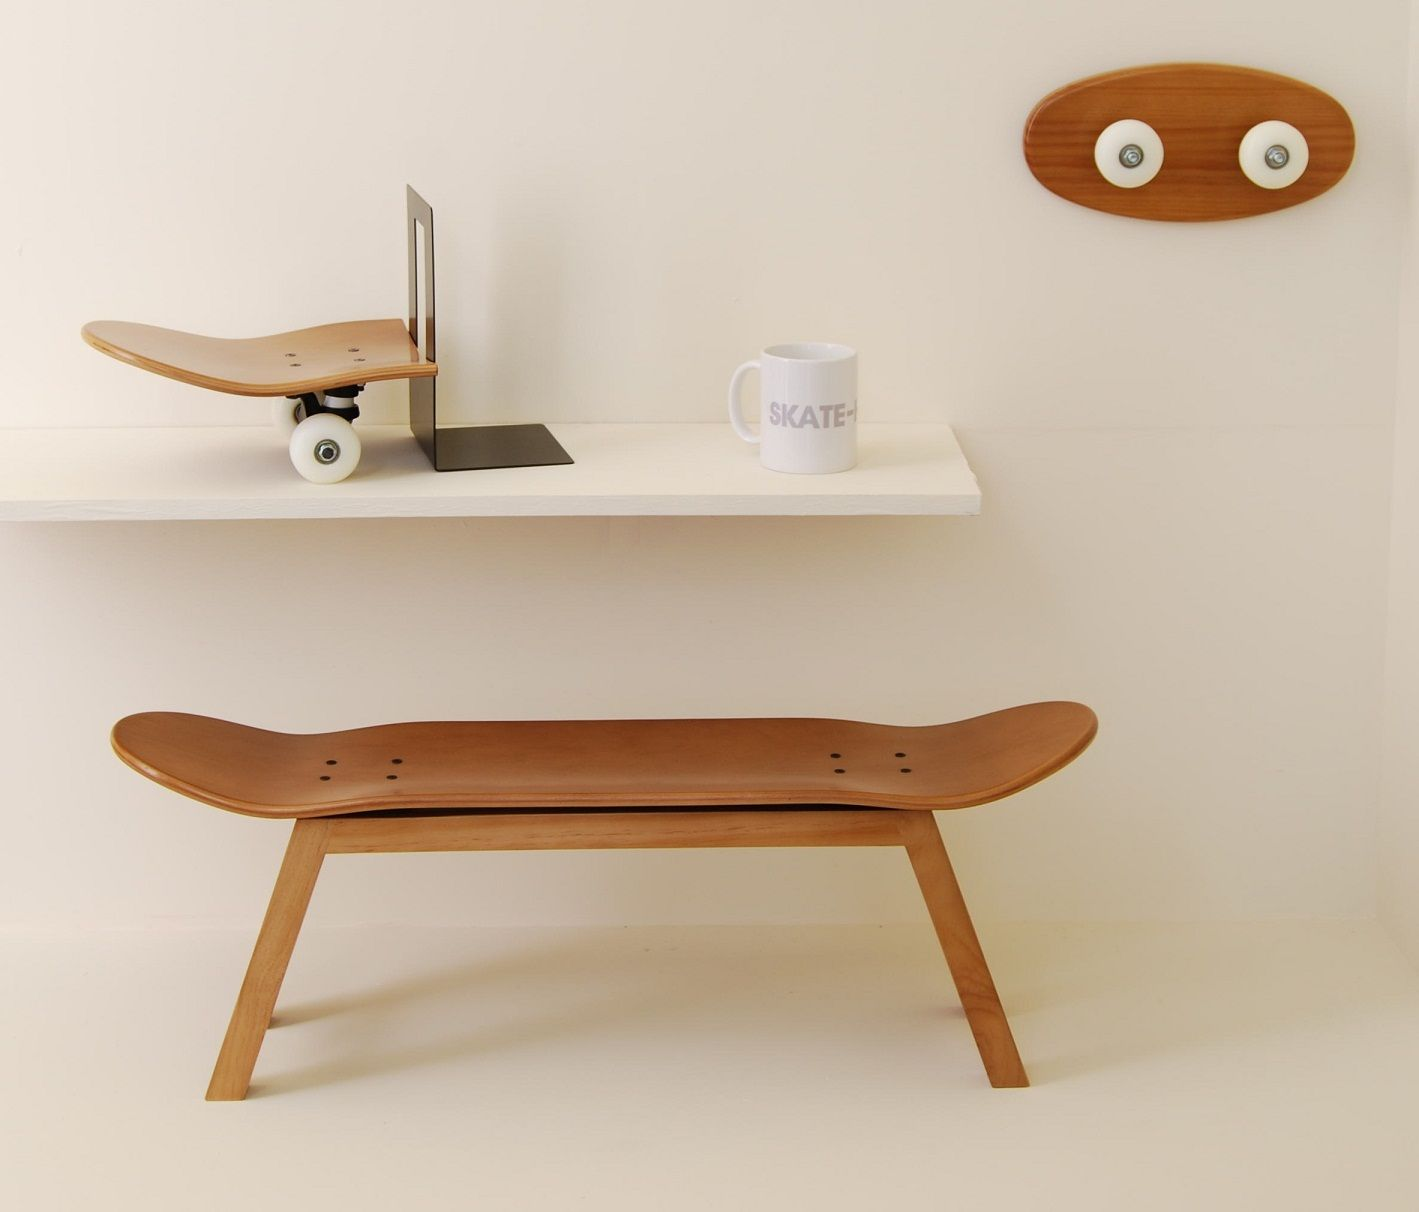 Skateboard Bedroom Furniture Box By Skate Home Honey Color Nollie Flip Stool Tail Stop Bookend